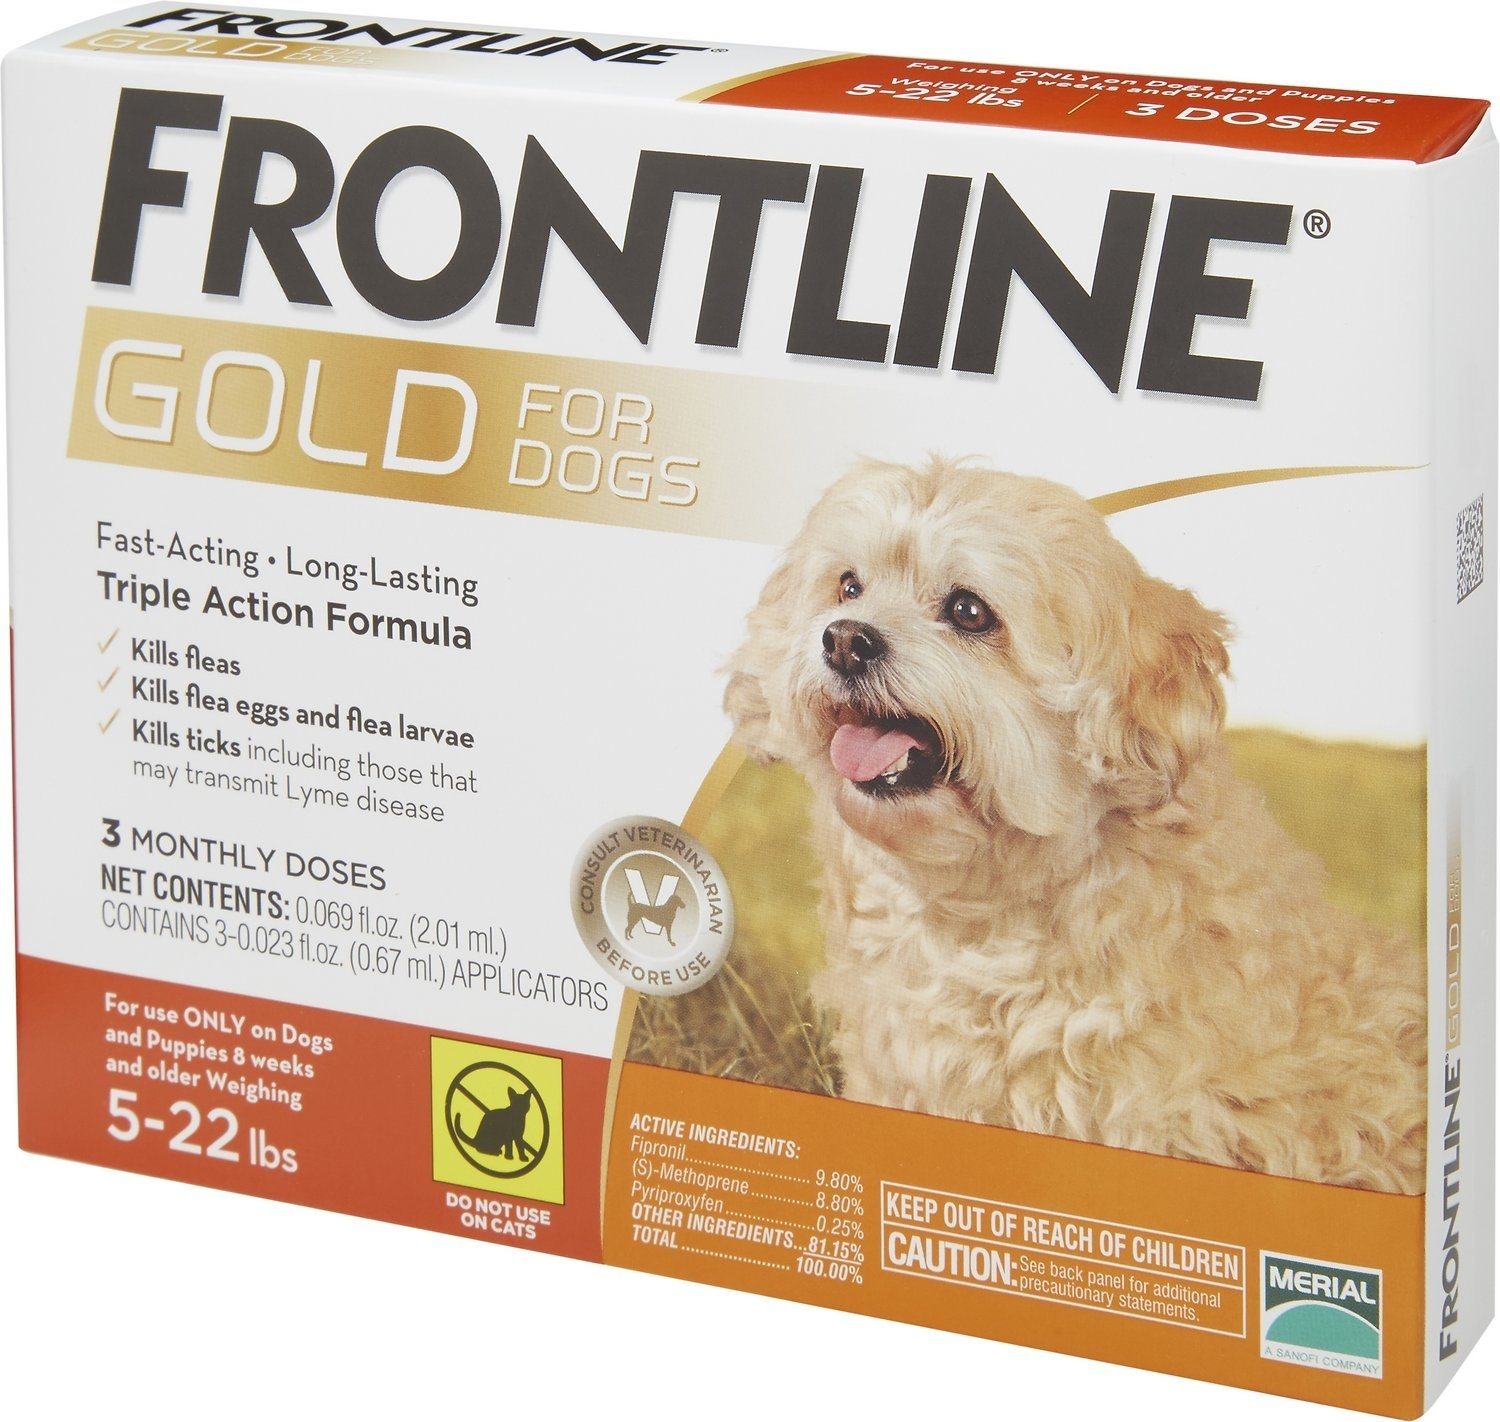 Frontline Gold Topical Flea Control Dog